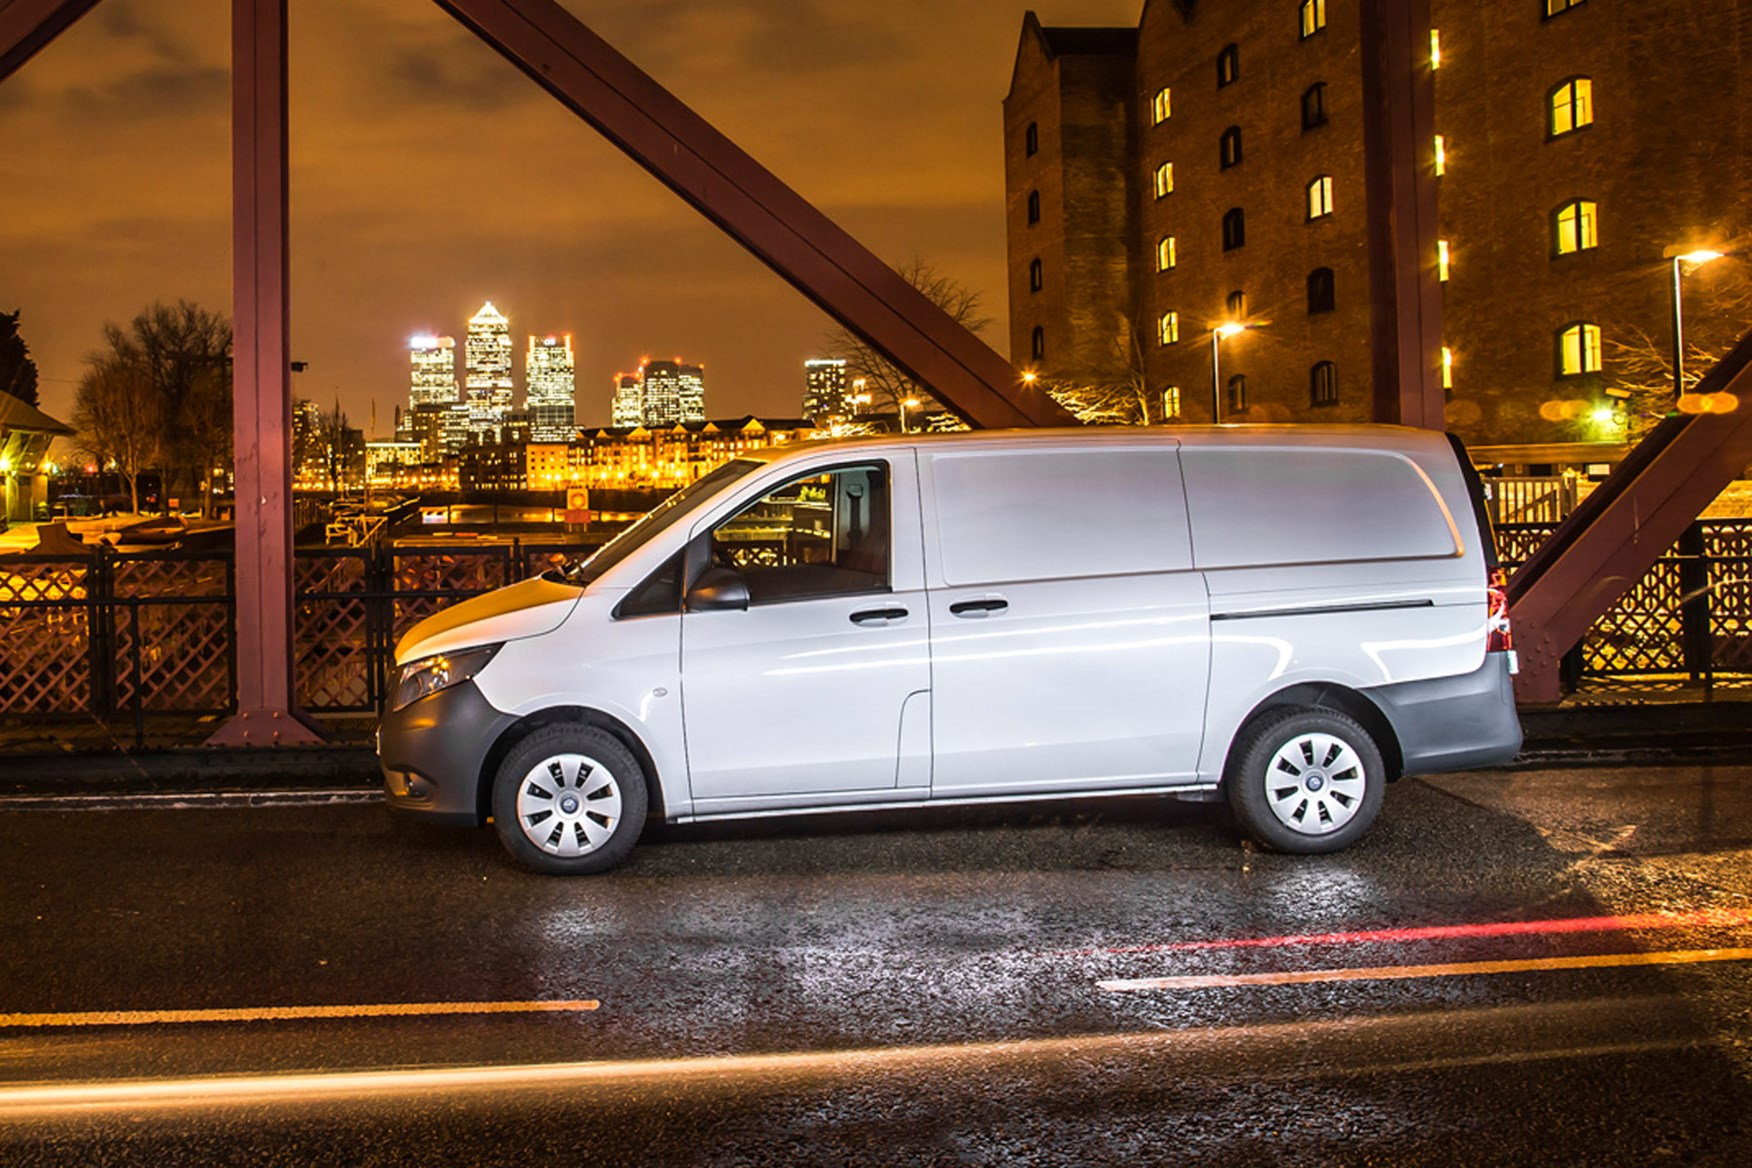 Mercedes-Benz Vito full review on Parkers Vans - side exterior